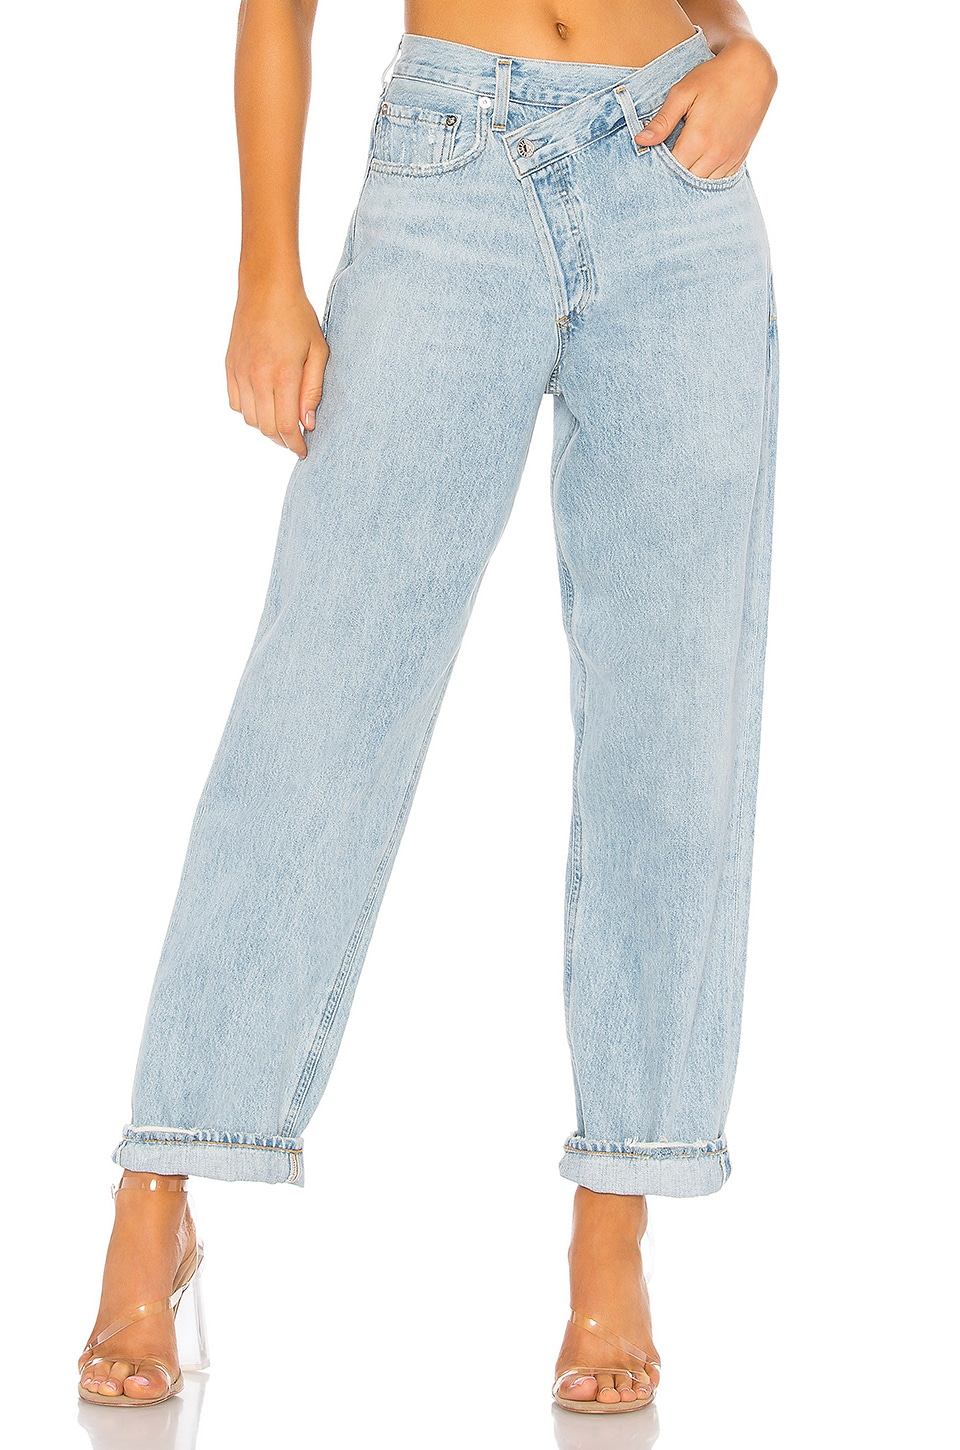 Criss Cross Upsized Jean             AGOLDE                                                                                                       CA$ 264.00 16